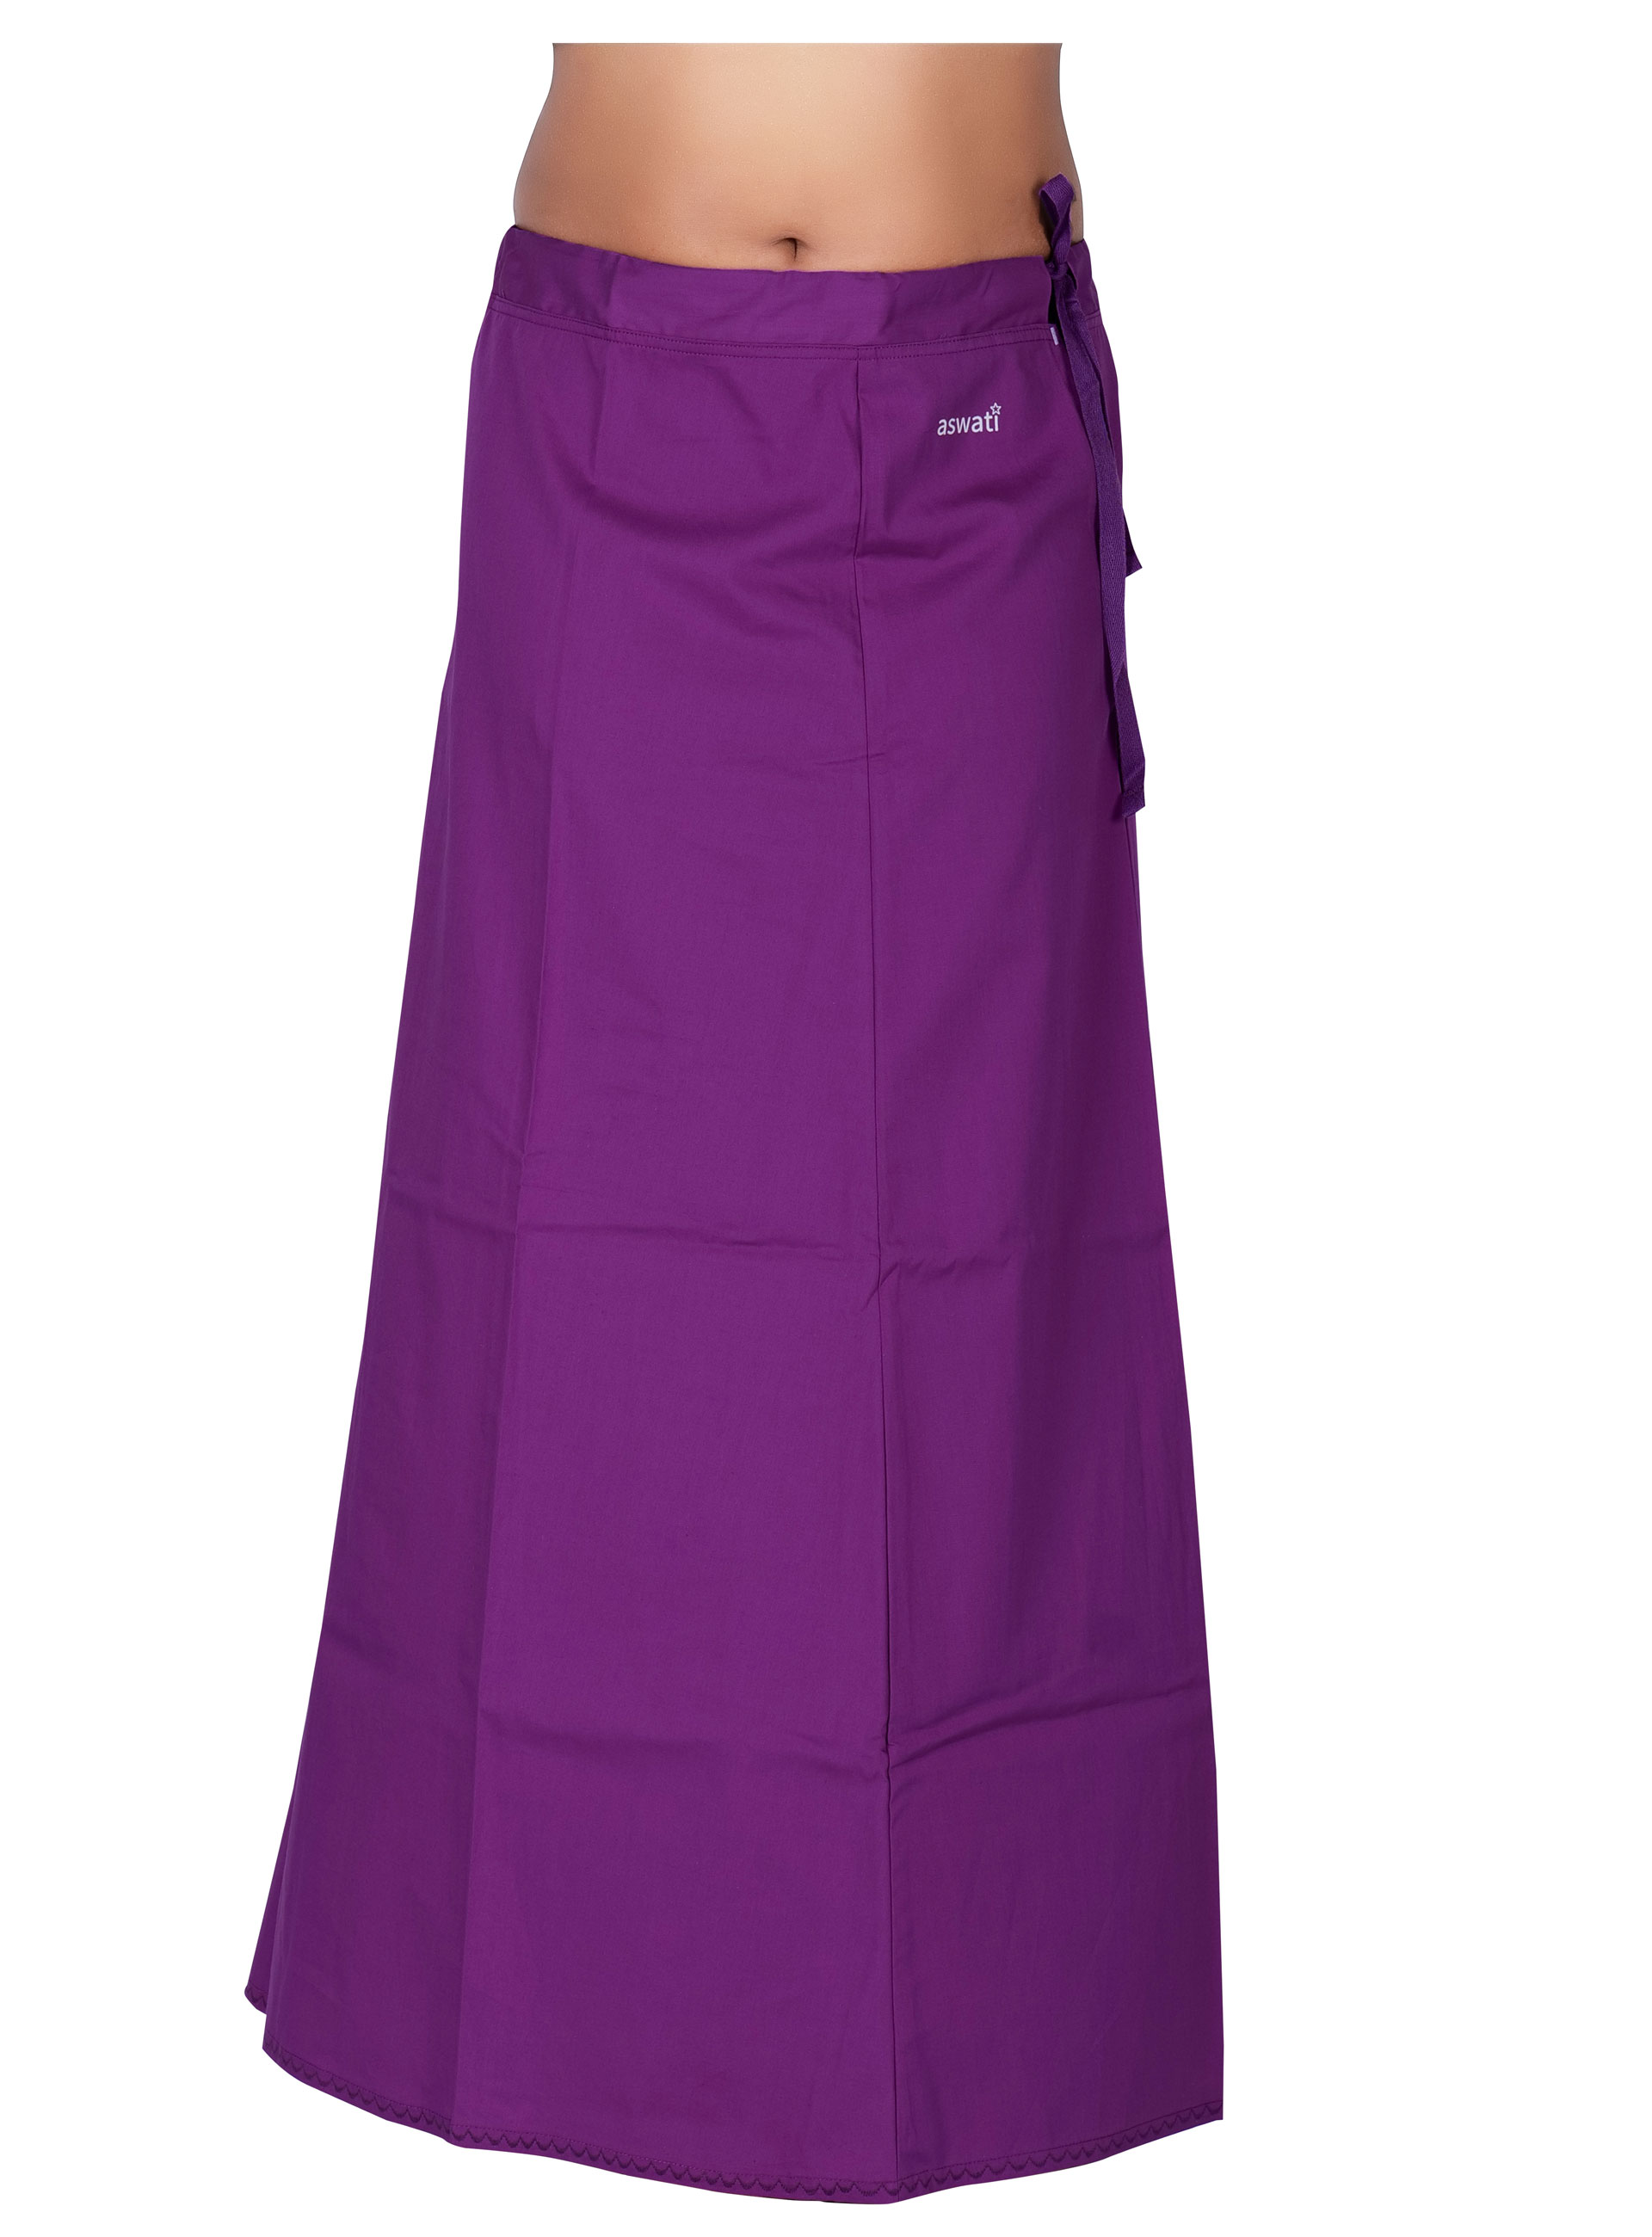 Purple Color Aswati Premium Inskirts (8 PART)